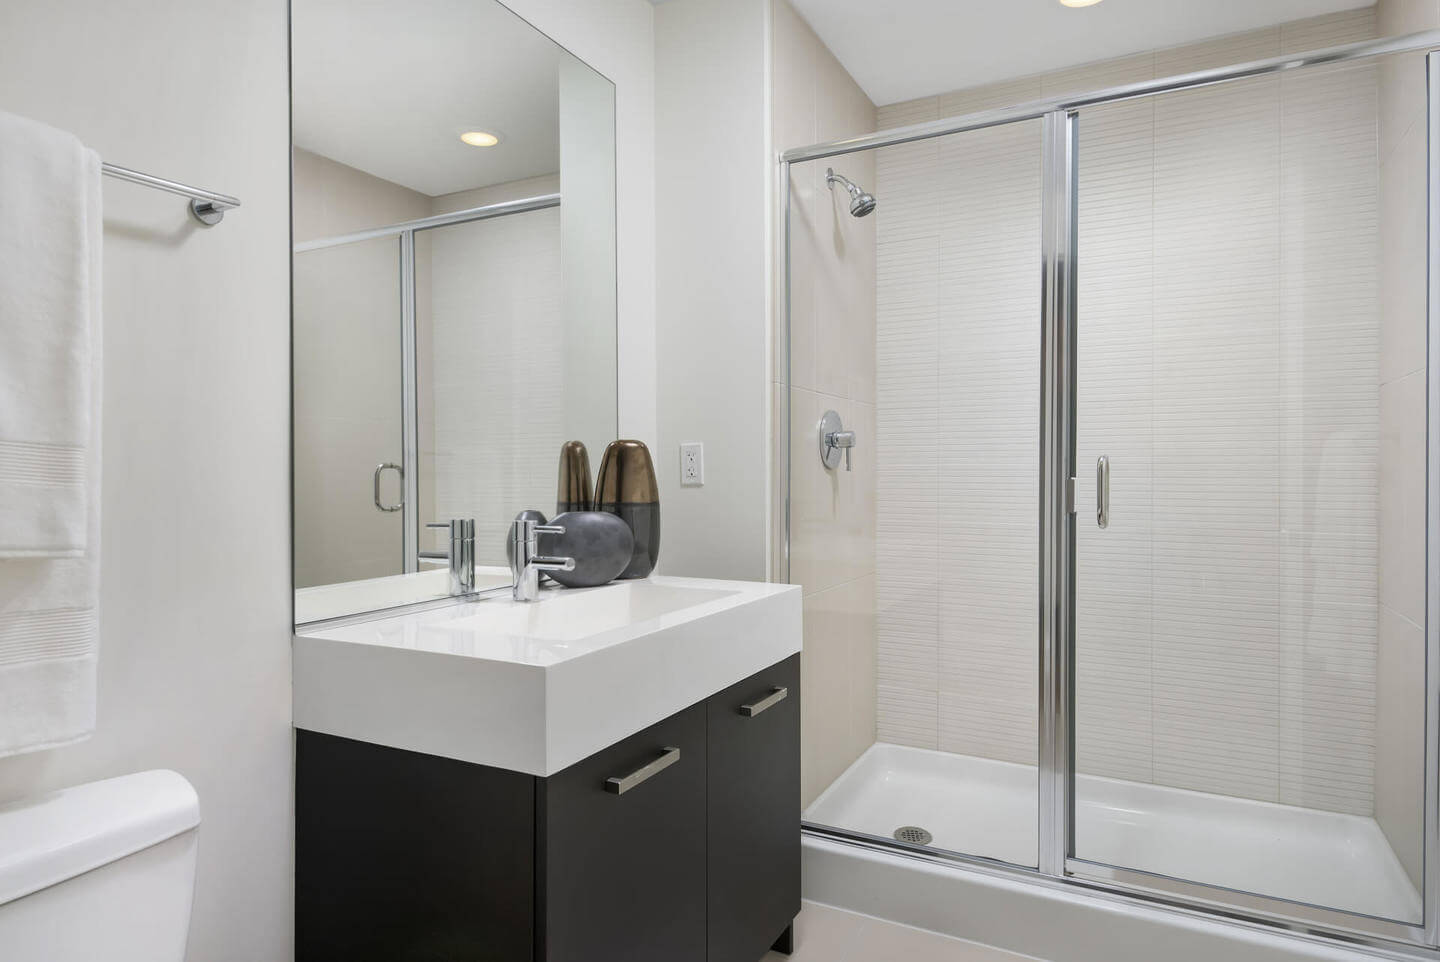 Best apartment hunting service in Chicago - Roosevelt Collection